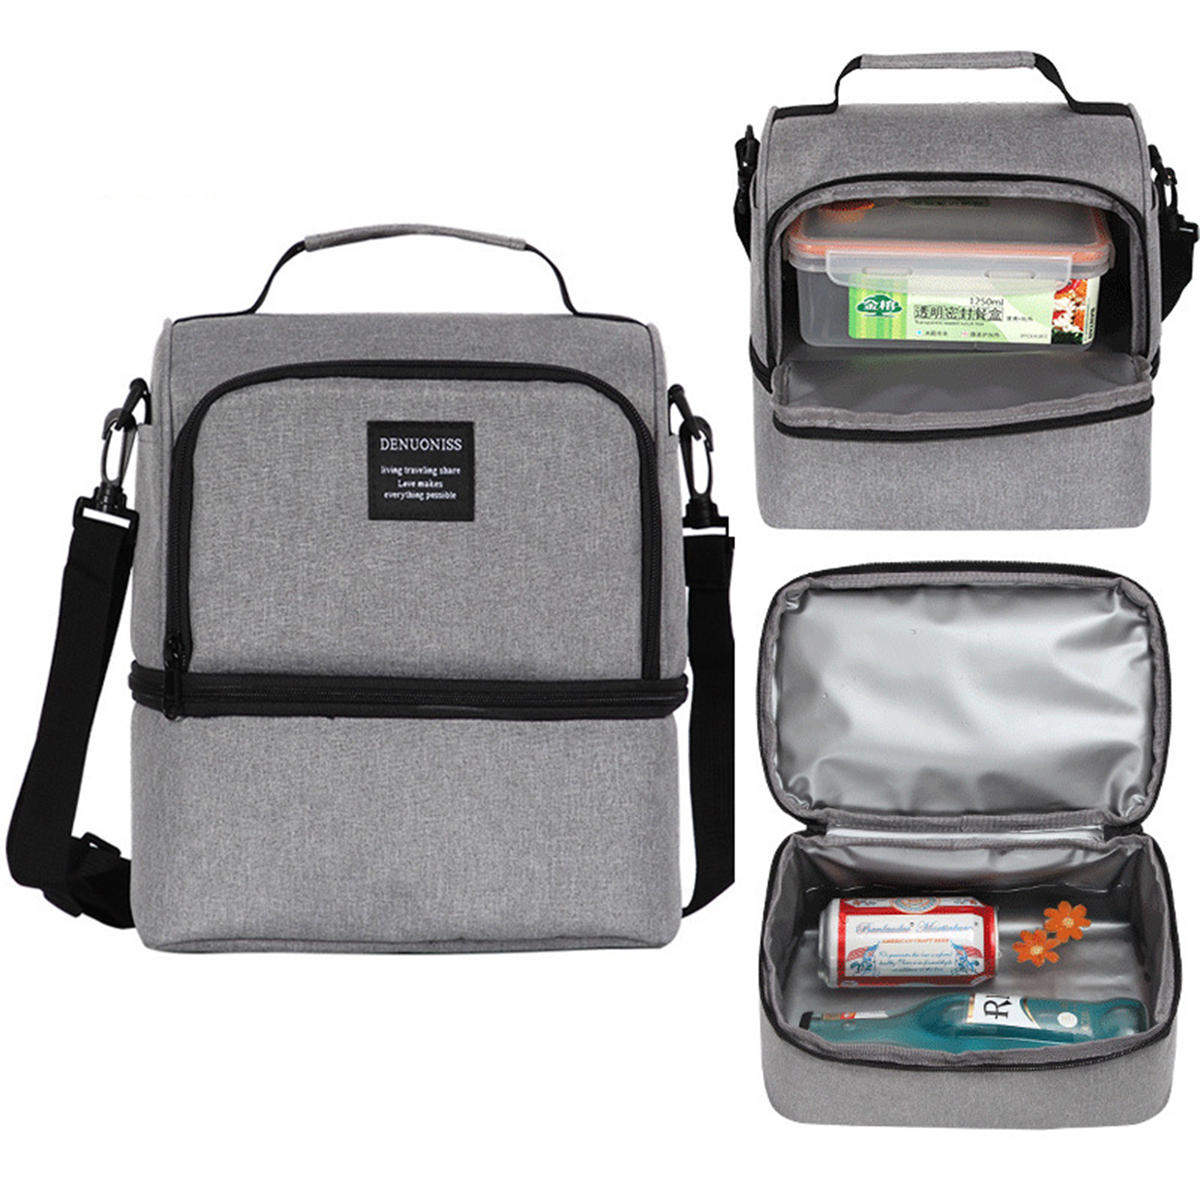 807ea06117c5 Outdoor Picnic Thermal Insulated Cooler Bag Food Container Lunch Box Tote  Storage Bag Men Women